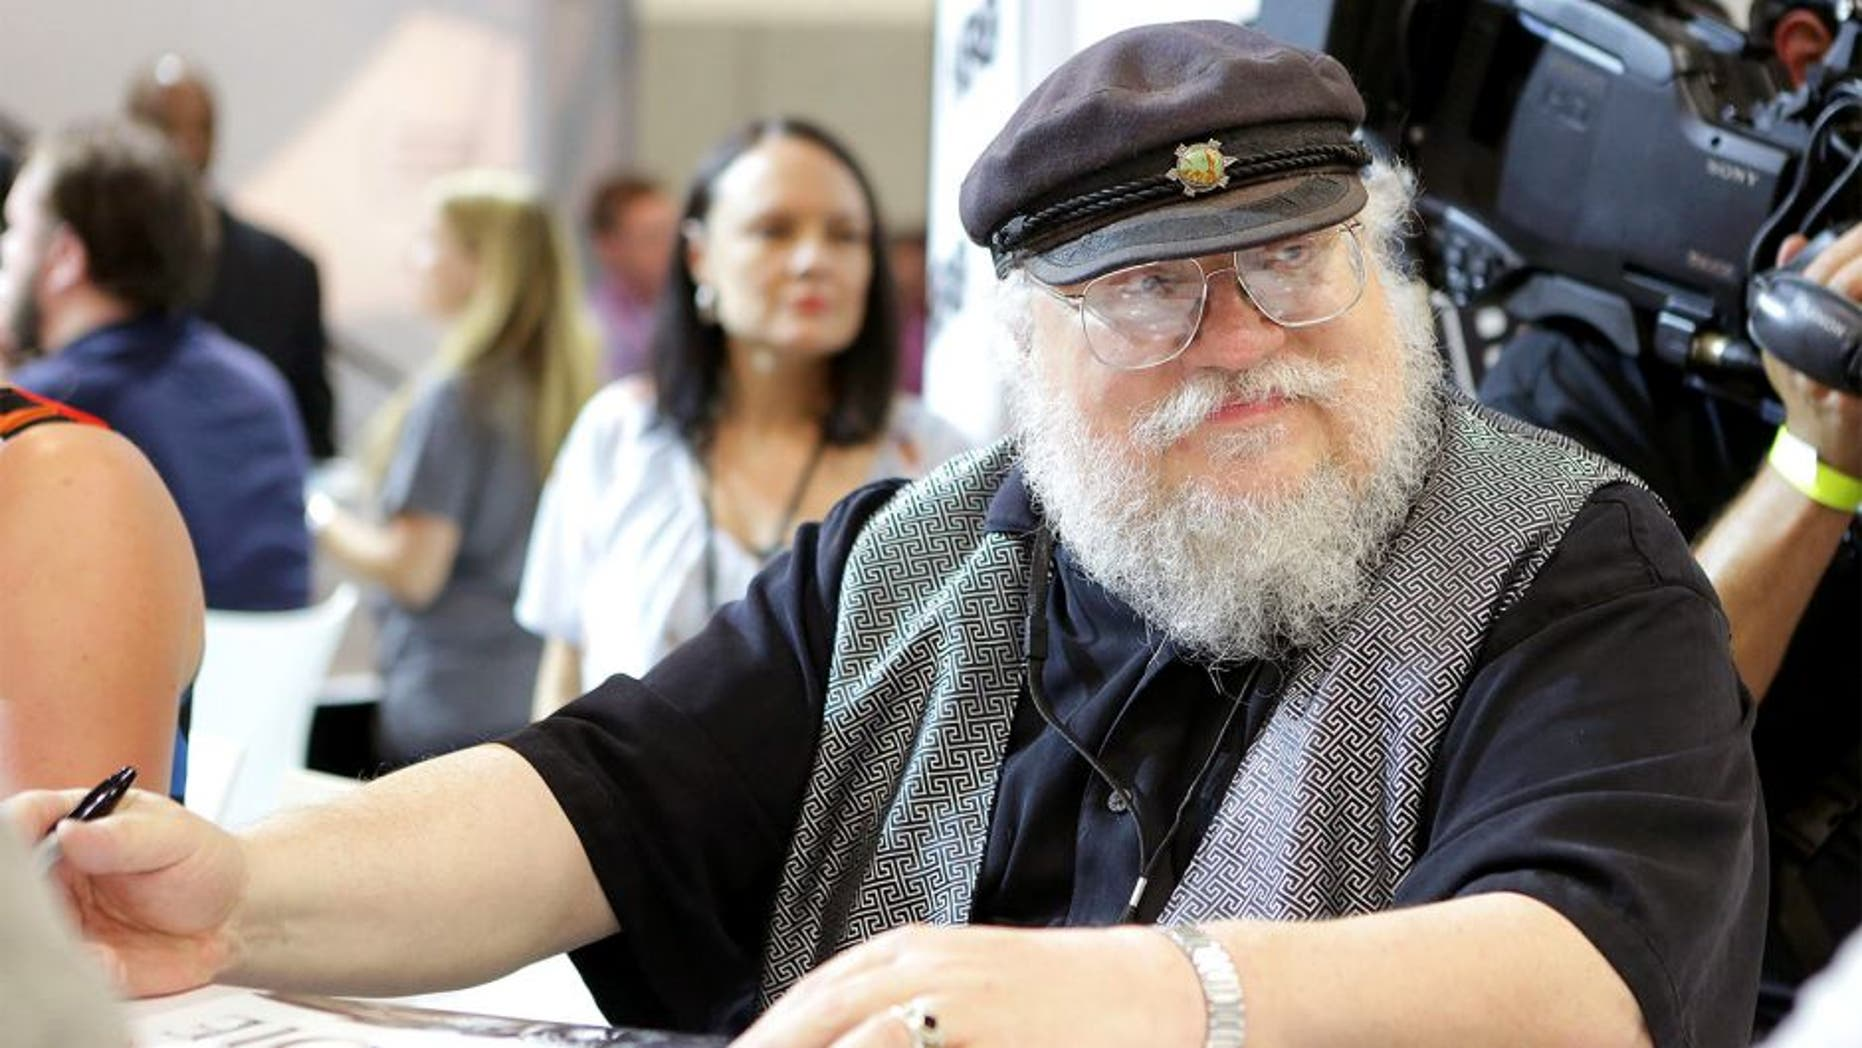 """SAN DIEGO, CA - JULY 25: Writer George R.R. Martin of """"Game of Thrones"""" signs autographs during the 2014 Comic-Con International Convention-Day 3 at the San Diego Convention Center on July 25, 2014 in San Diego, California. (Photo by Tiffany Rose/Getty Images)"""